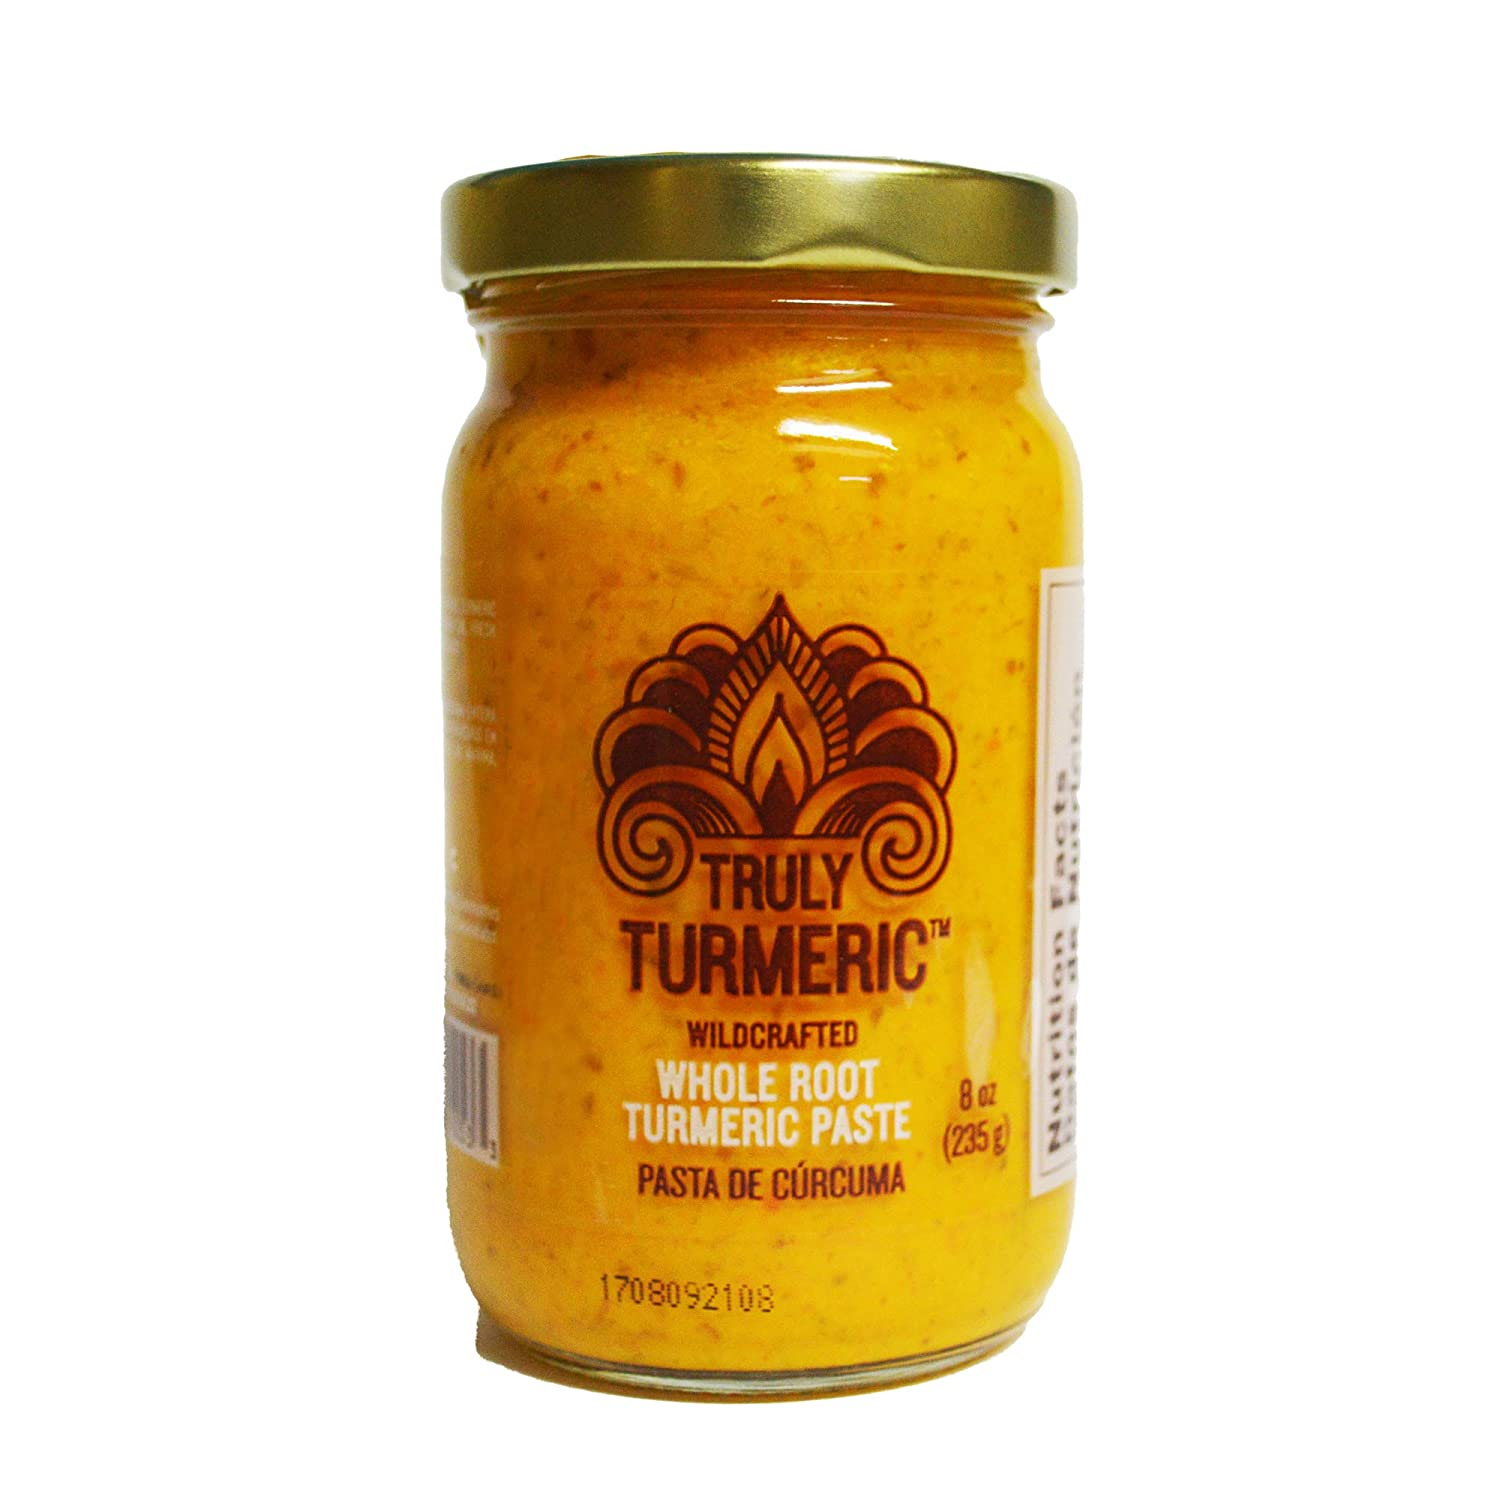 Truly Turmeric - Fresh Wildcrafted Whole Root Turmeric Paste | Turmeric Spice for Cooking and Golden Milk - 8oz (235g) - Original